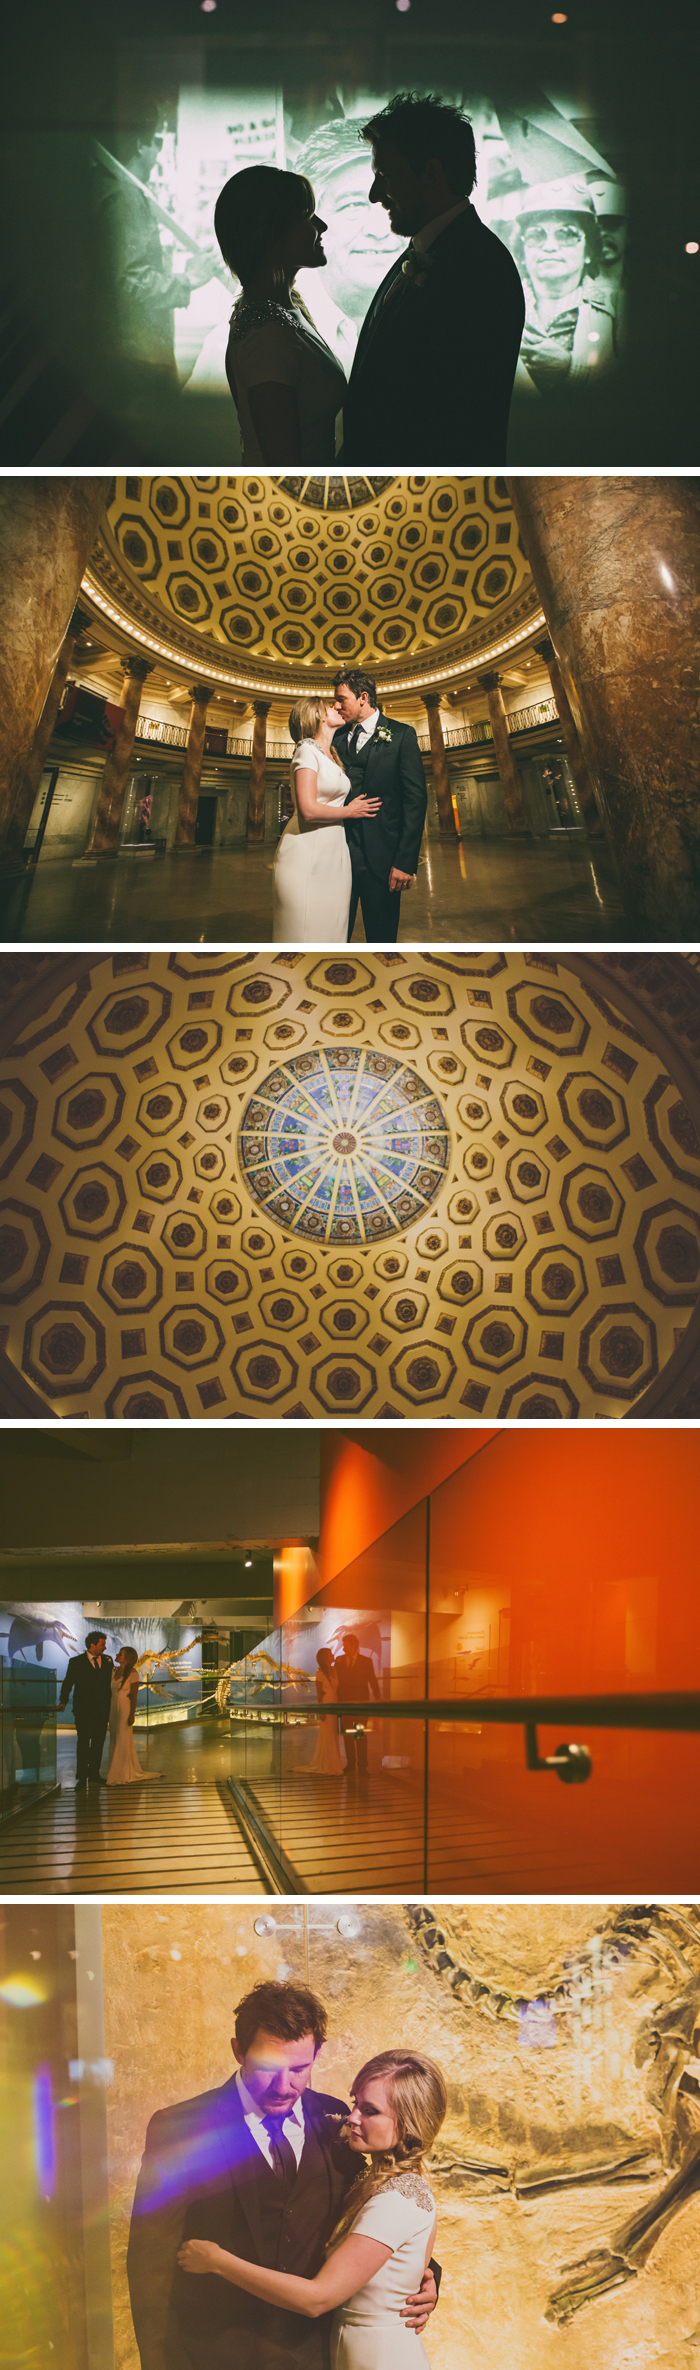 Wedding Photos LA Natural History Museum